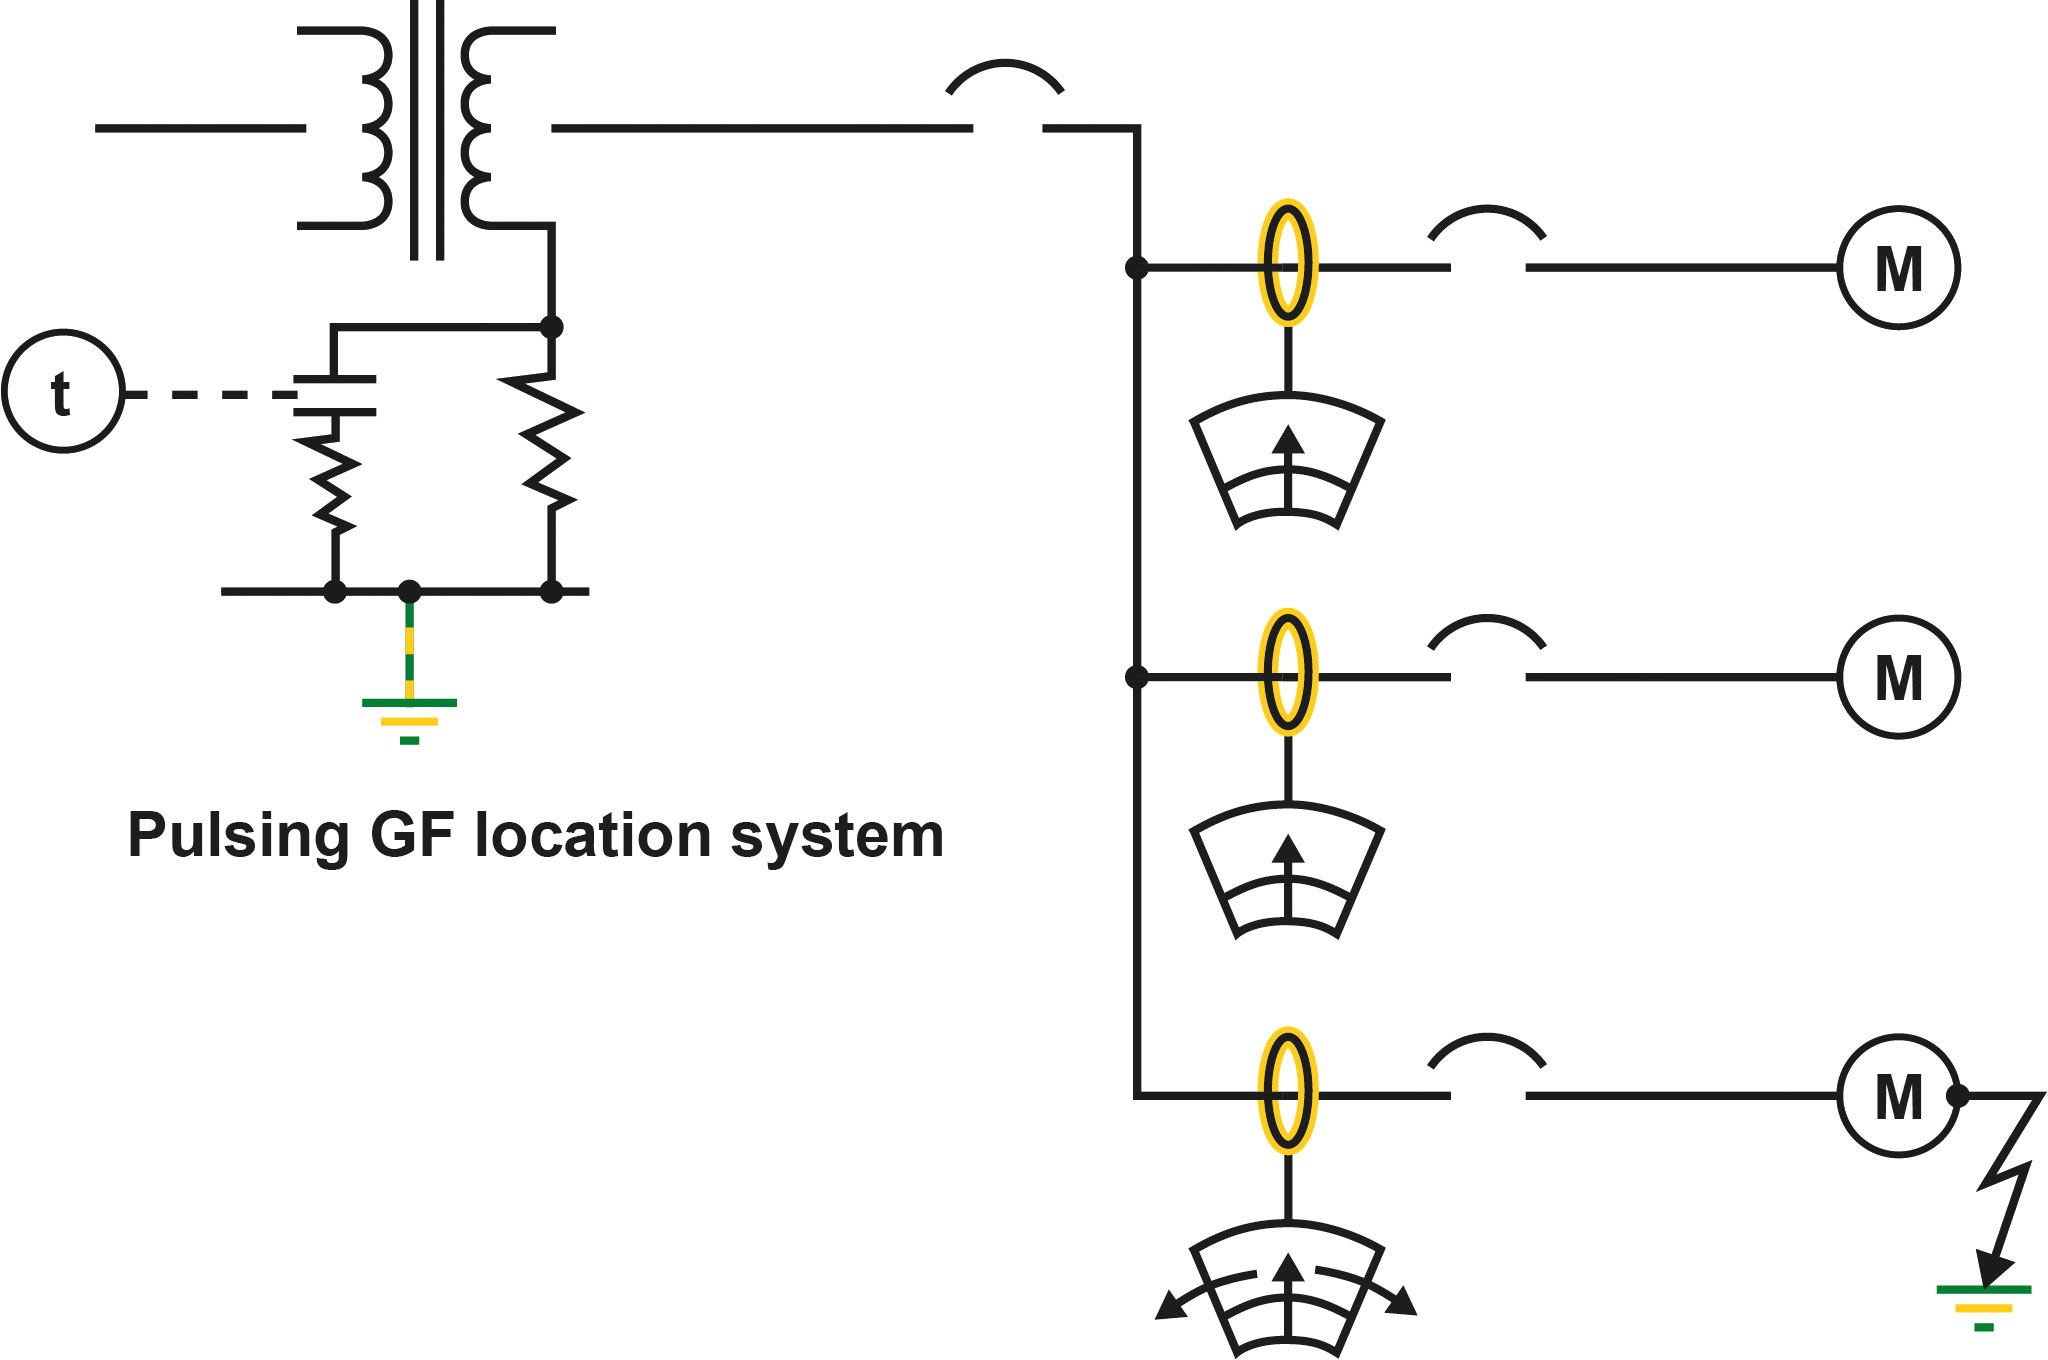 Pulsing ground-fault location system